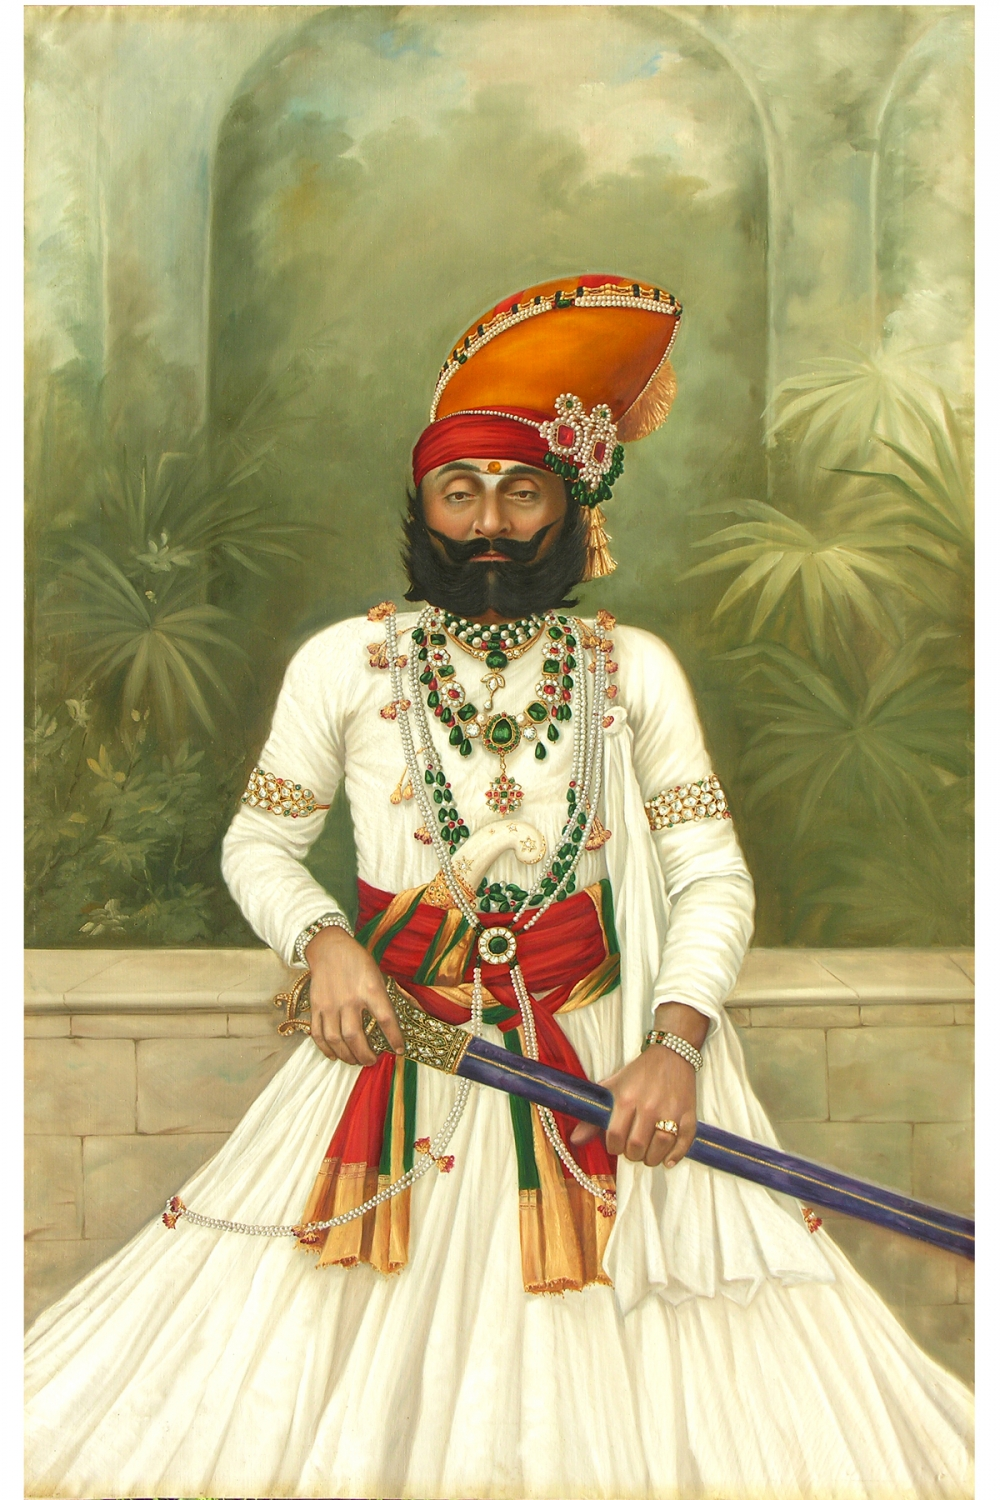 The stunning portrait of Maharaja Takhat Singh (19th century, oil on canvas), Photo courtesy: Mehrangarh Fort Museum via Laura Marsolek, published with permission